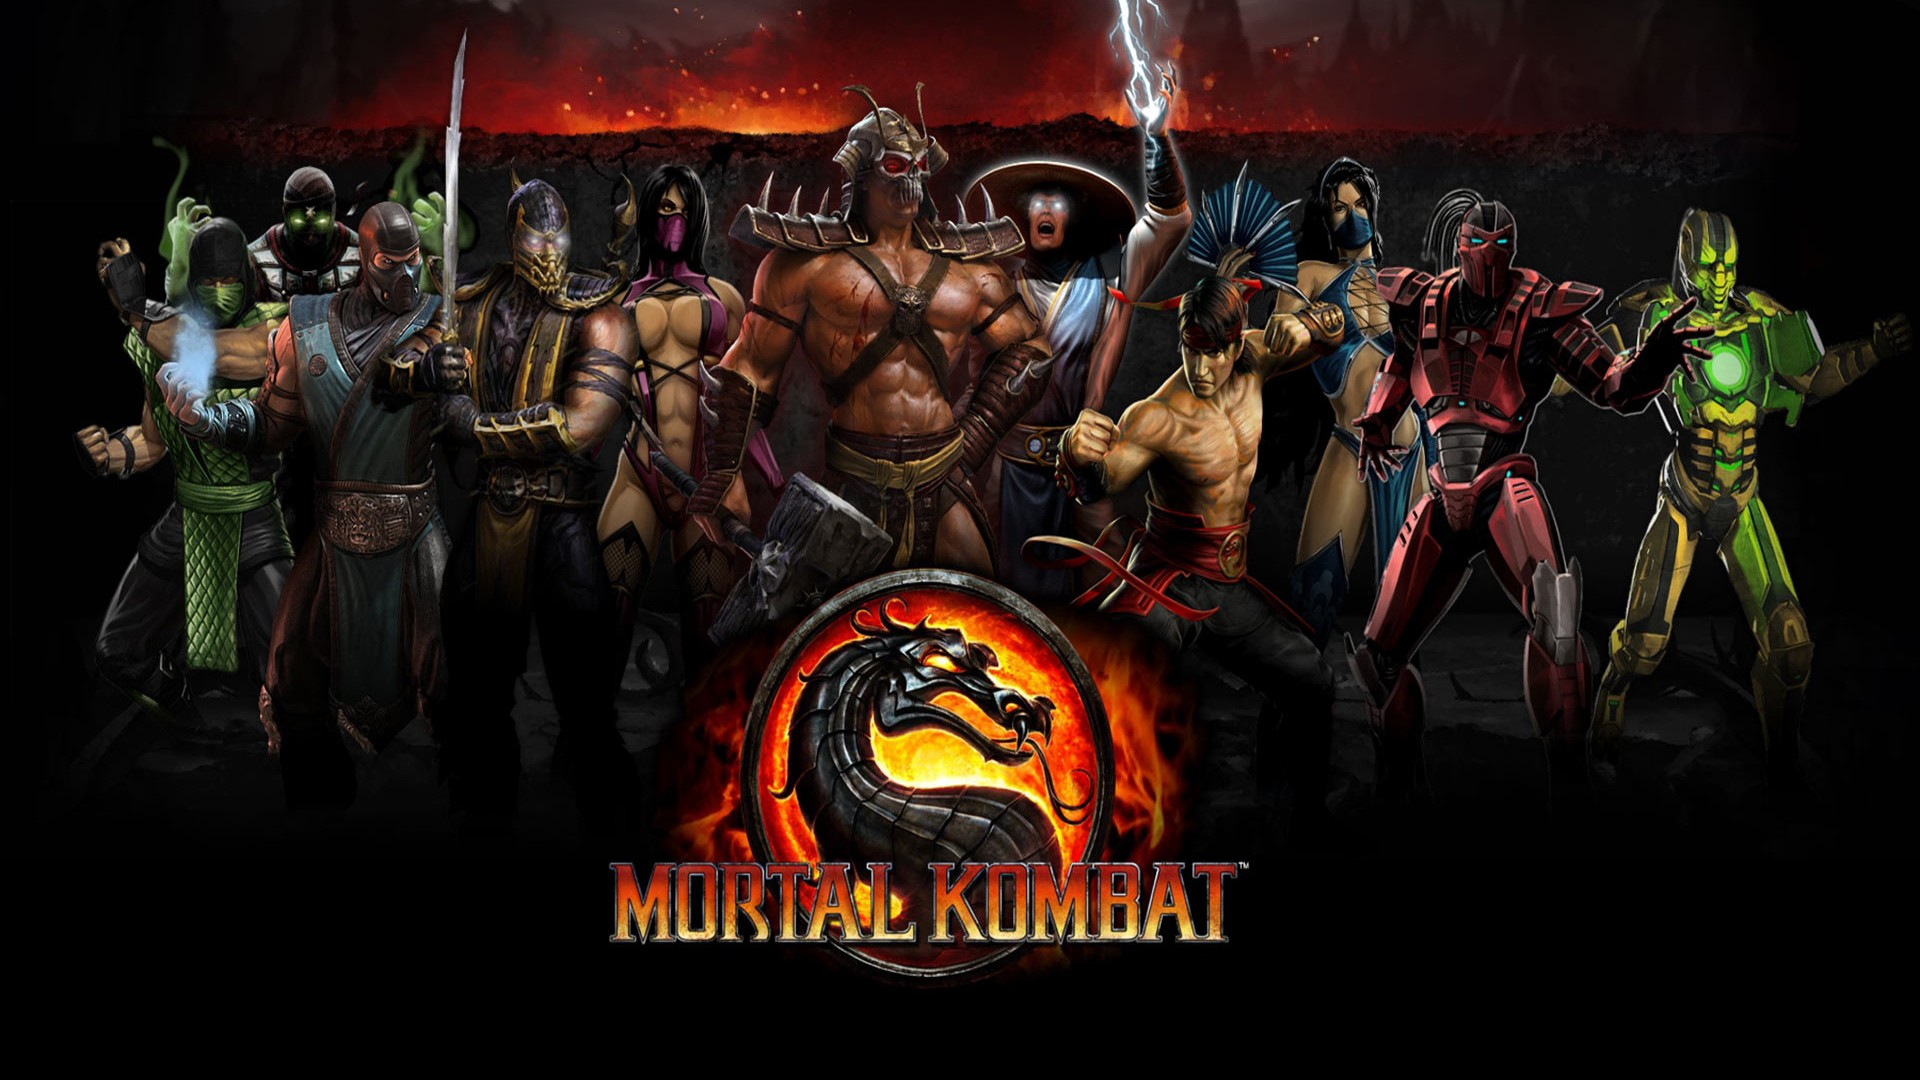 Mortal Kombat Wallpaper Games Computer